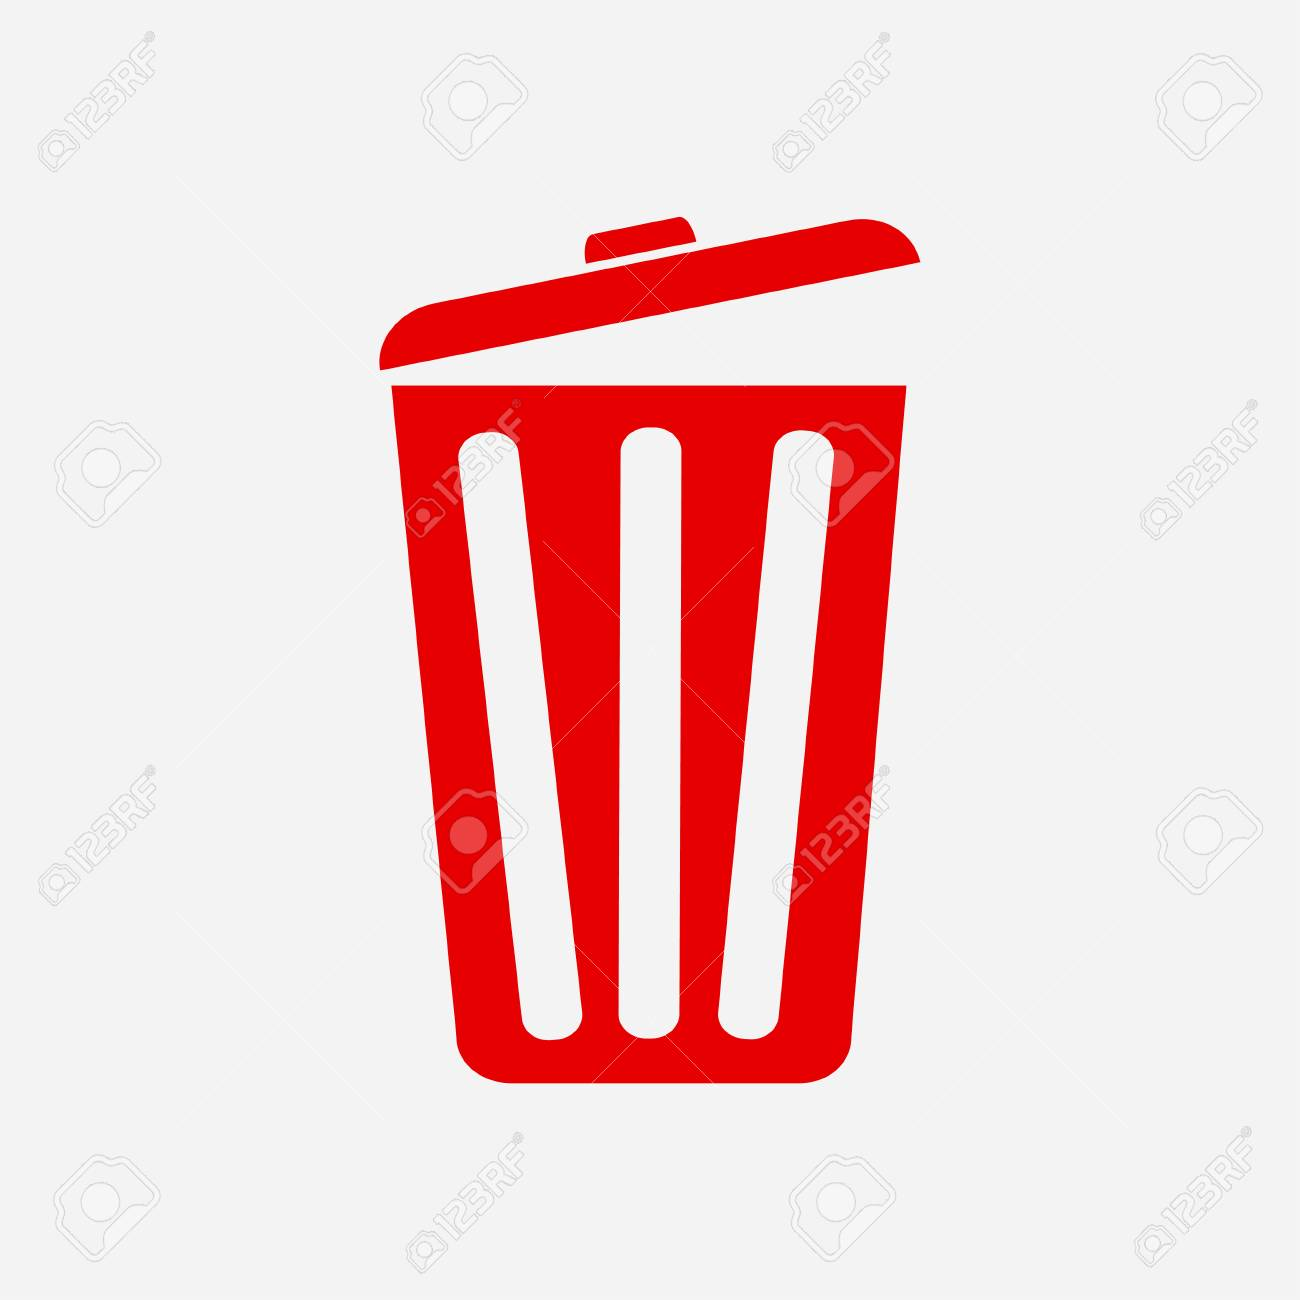 Red trash can icon. - 84747832